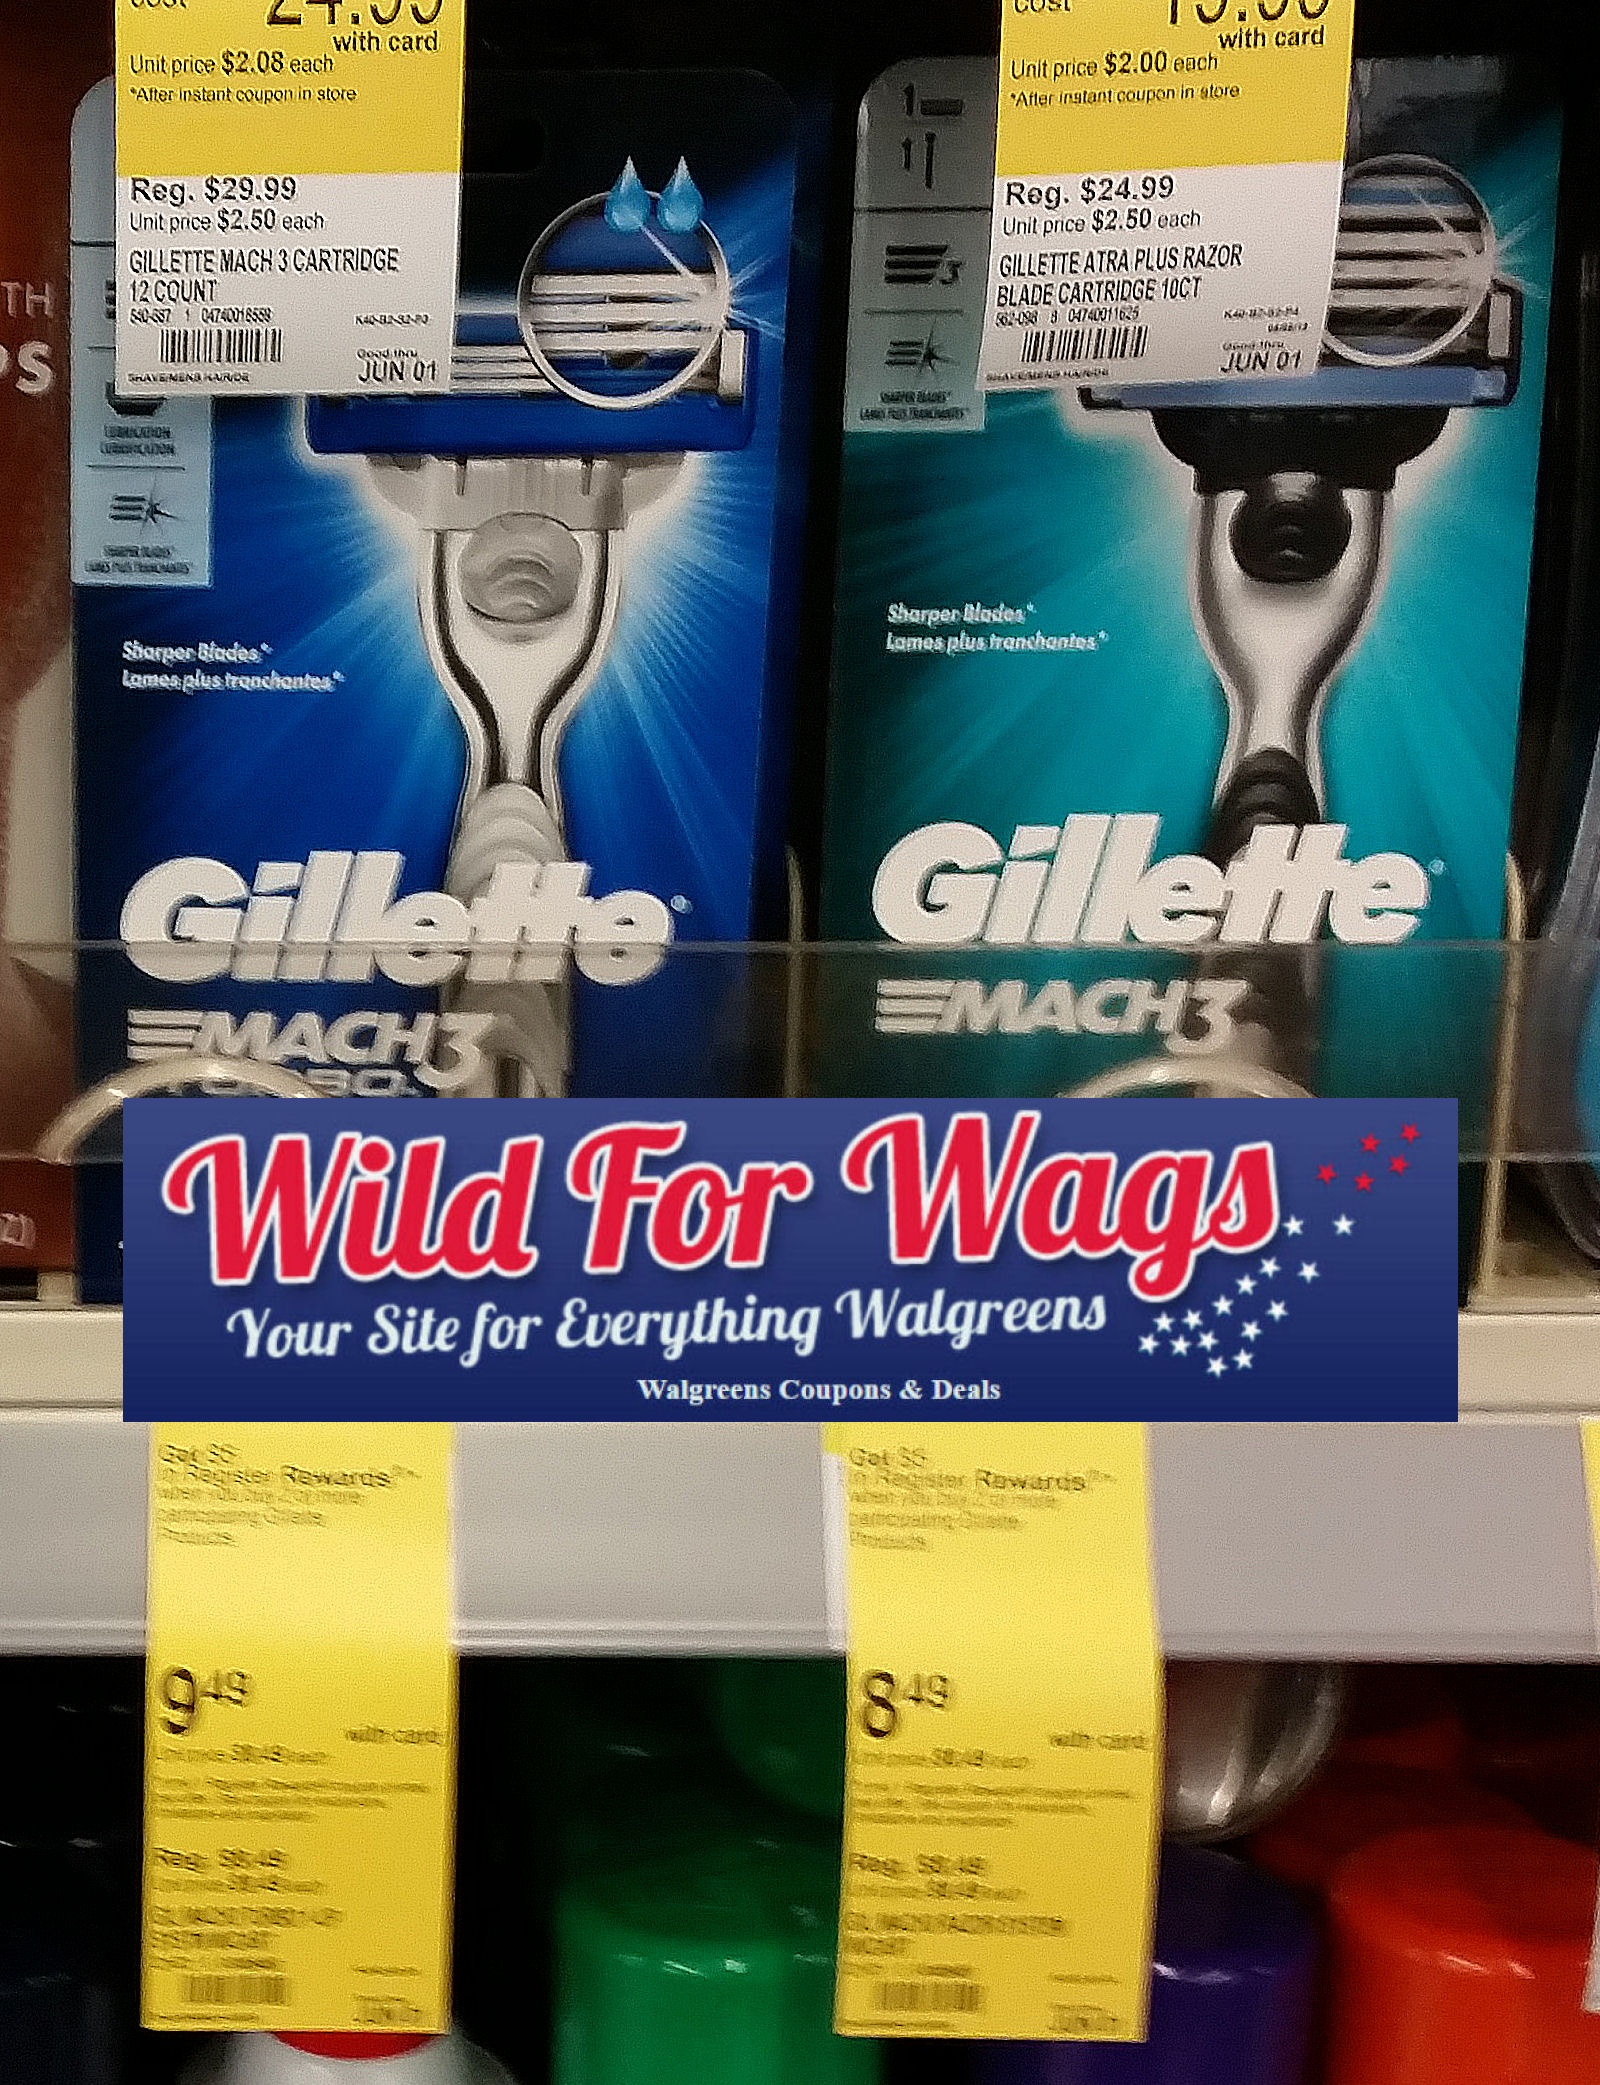 Check Your Paper For $4 Gillette Coupon – $1.91 Gillette Mach Razors! - Free Printable Gillette Coupons